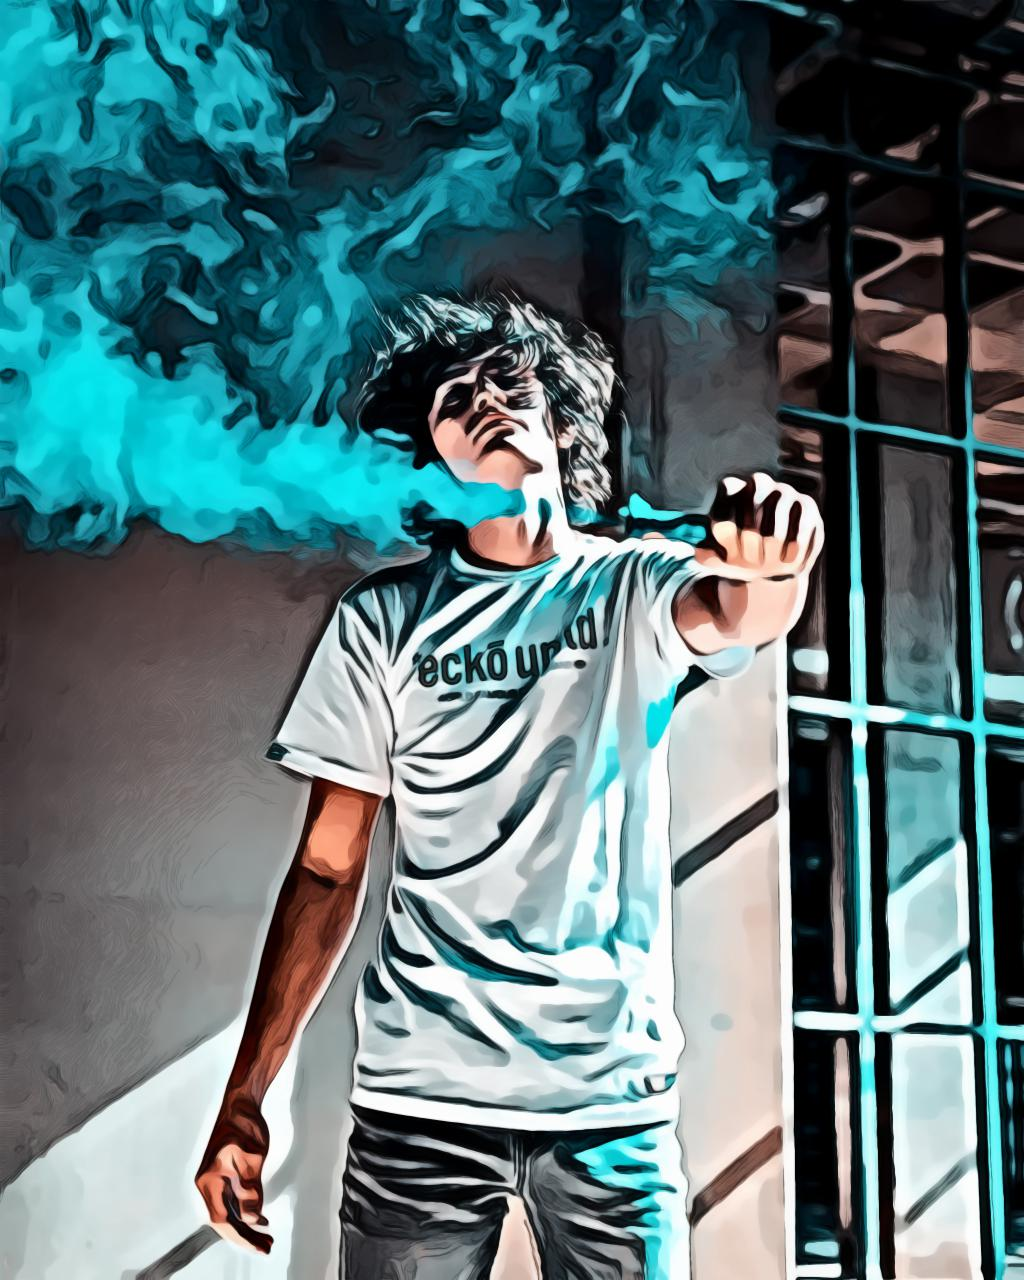 Man posing while holding blue smoke bomb